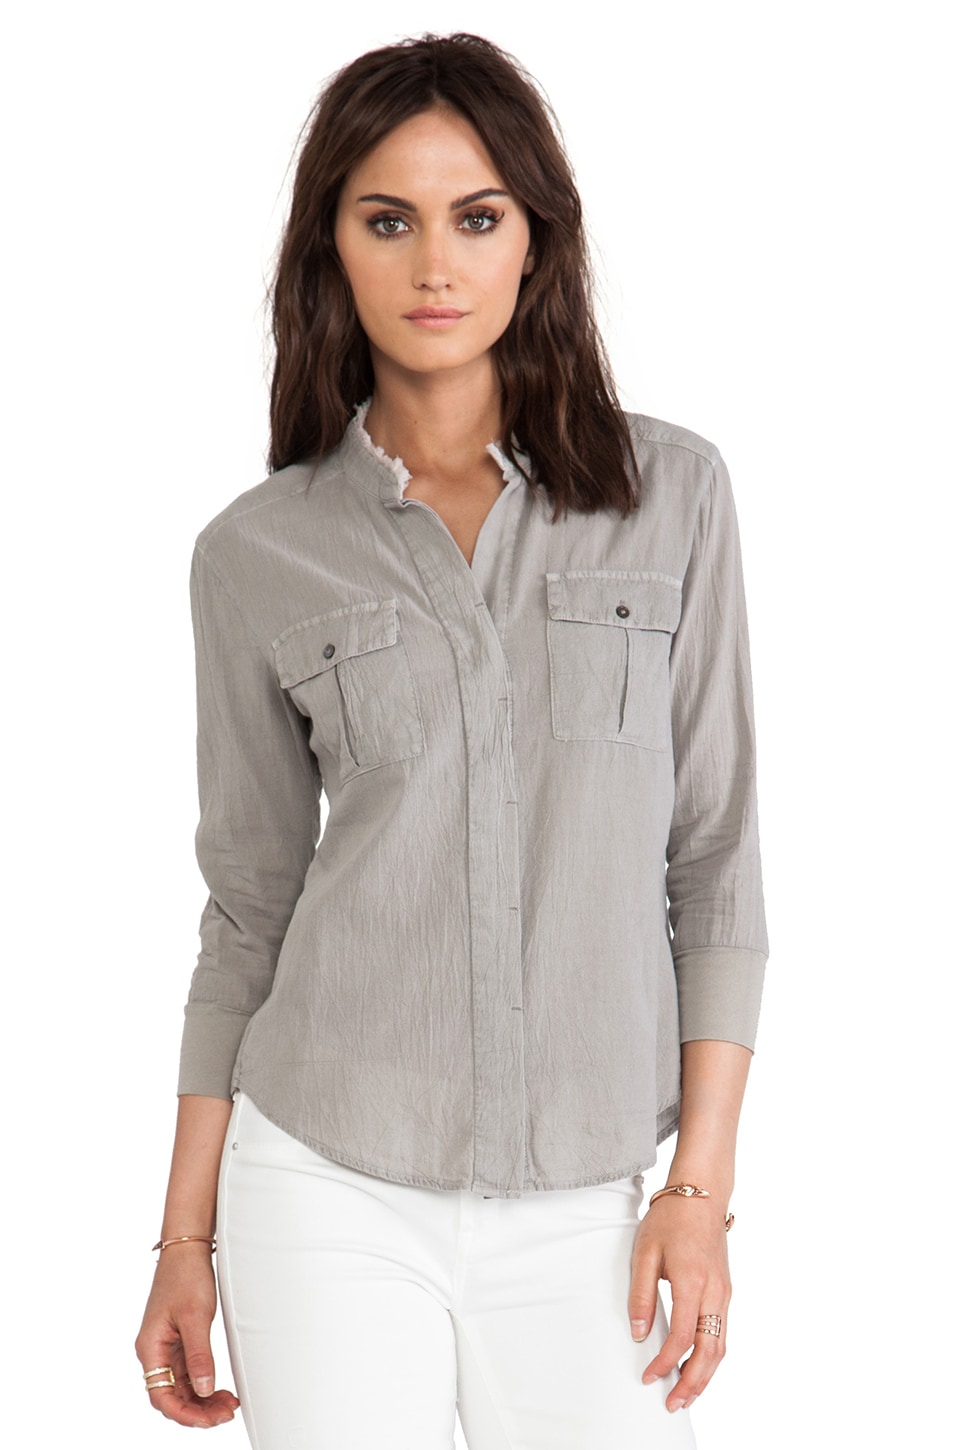 James Perse Collarless Safari Top in Shadow